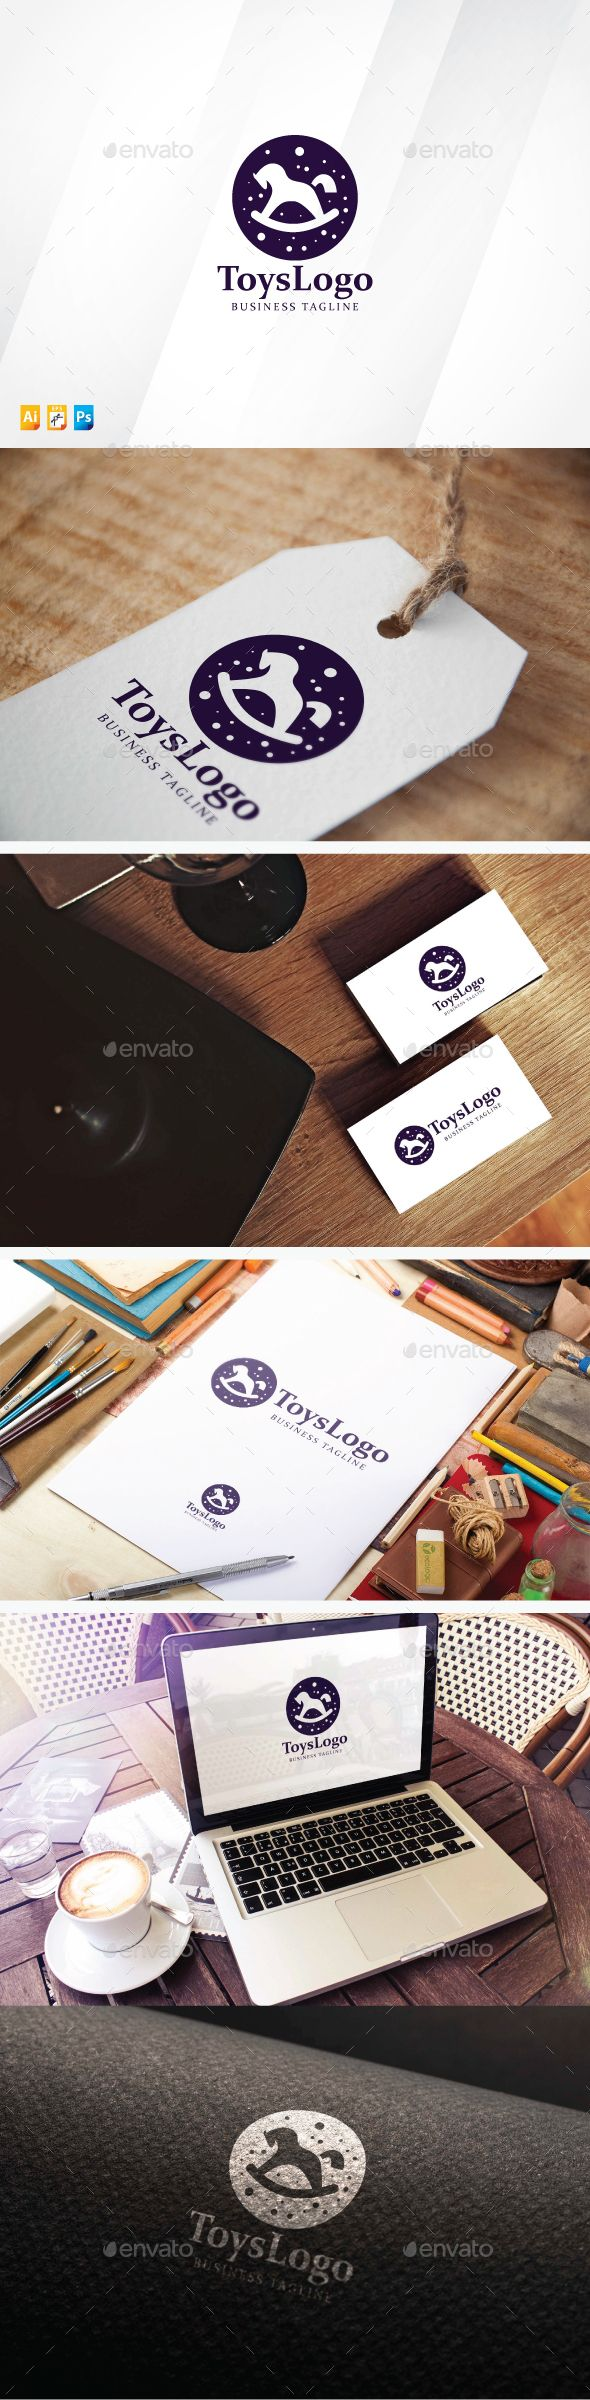 Toys Logo — Photoshop PSD #sweet #institute • Available here → https://graphicriver.net/item/toys-logo/13721794?ref=pxcr